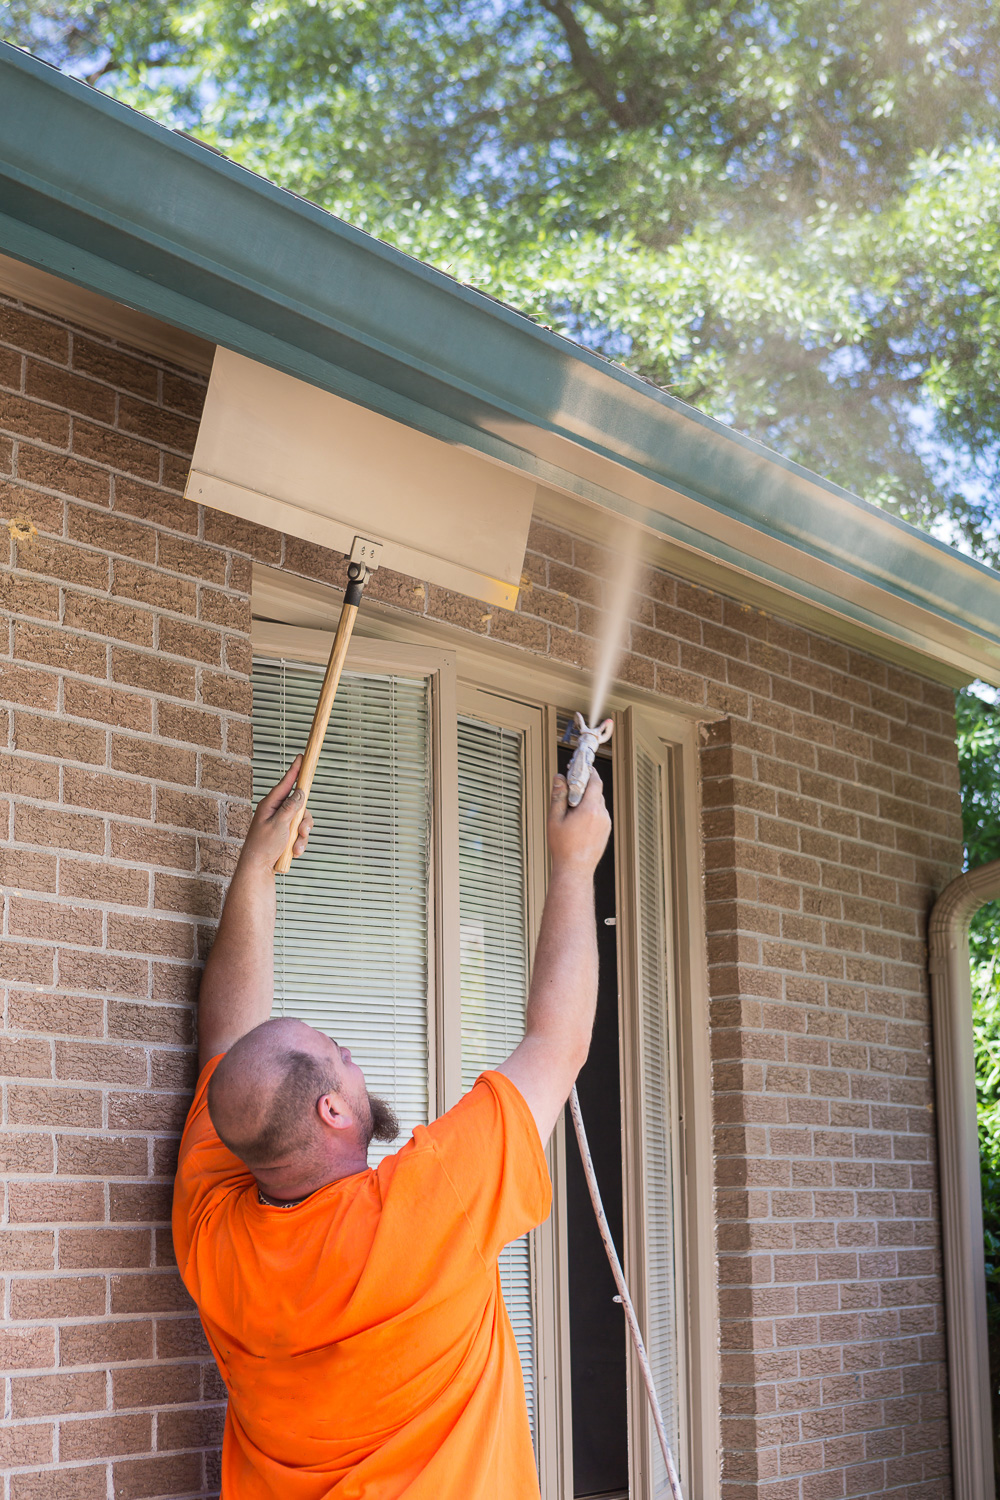 Using a paint shield to spray paint on the exterior of a home